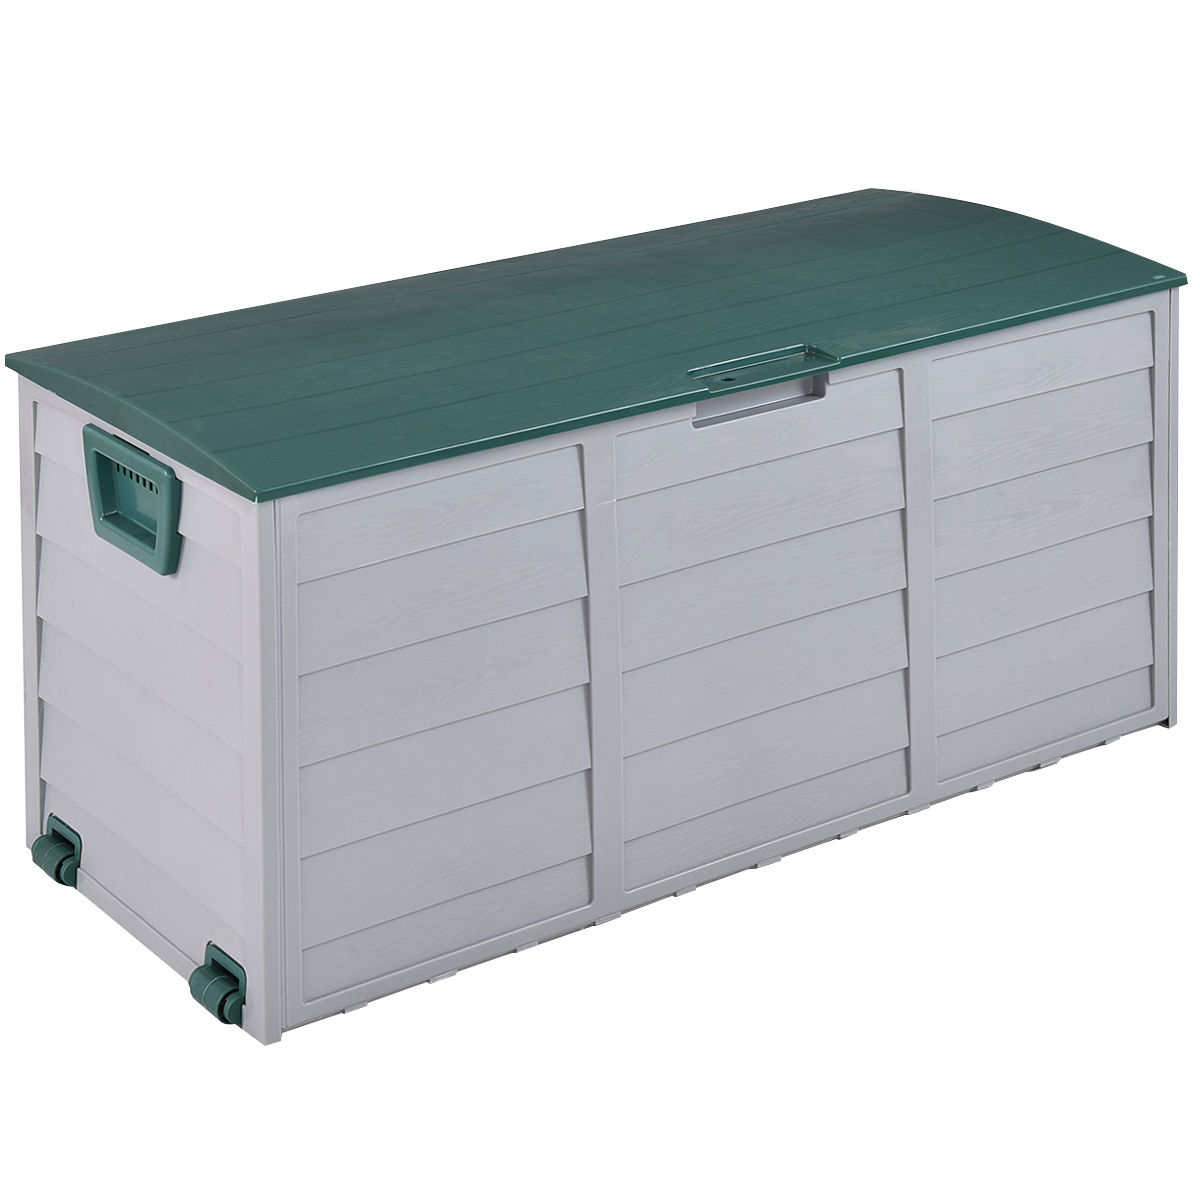 Gymax 70 Gallon Outdoor Patio Deck Storage Box Tool Box Container